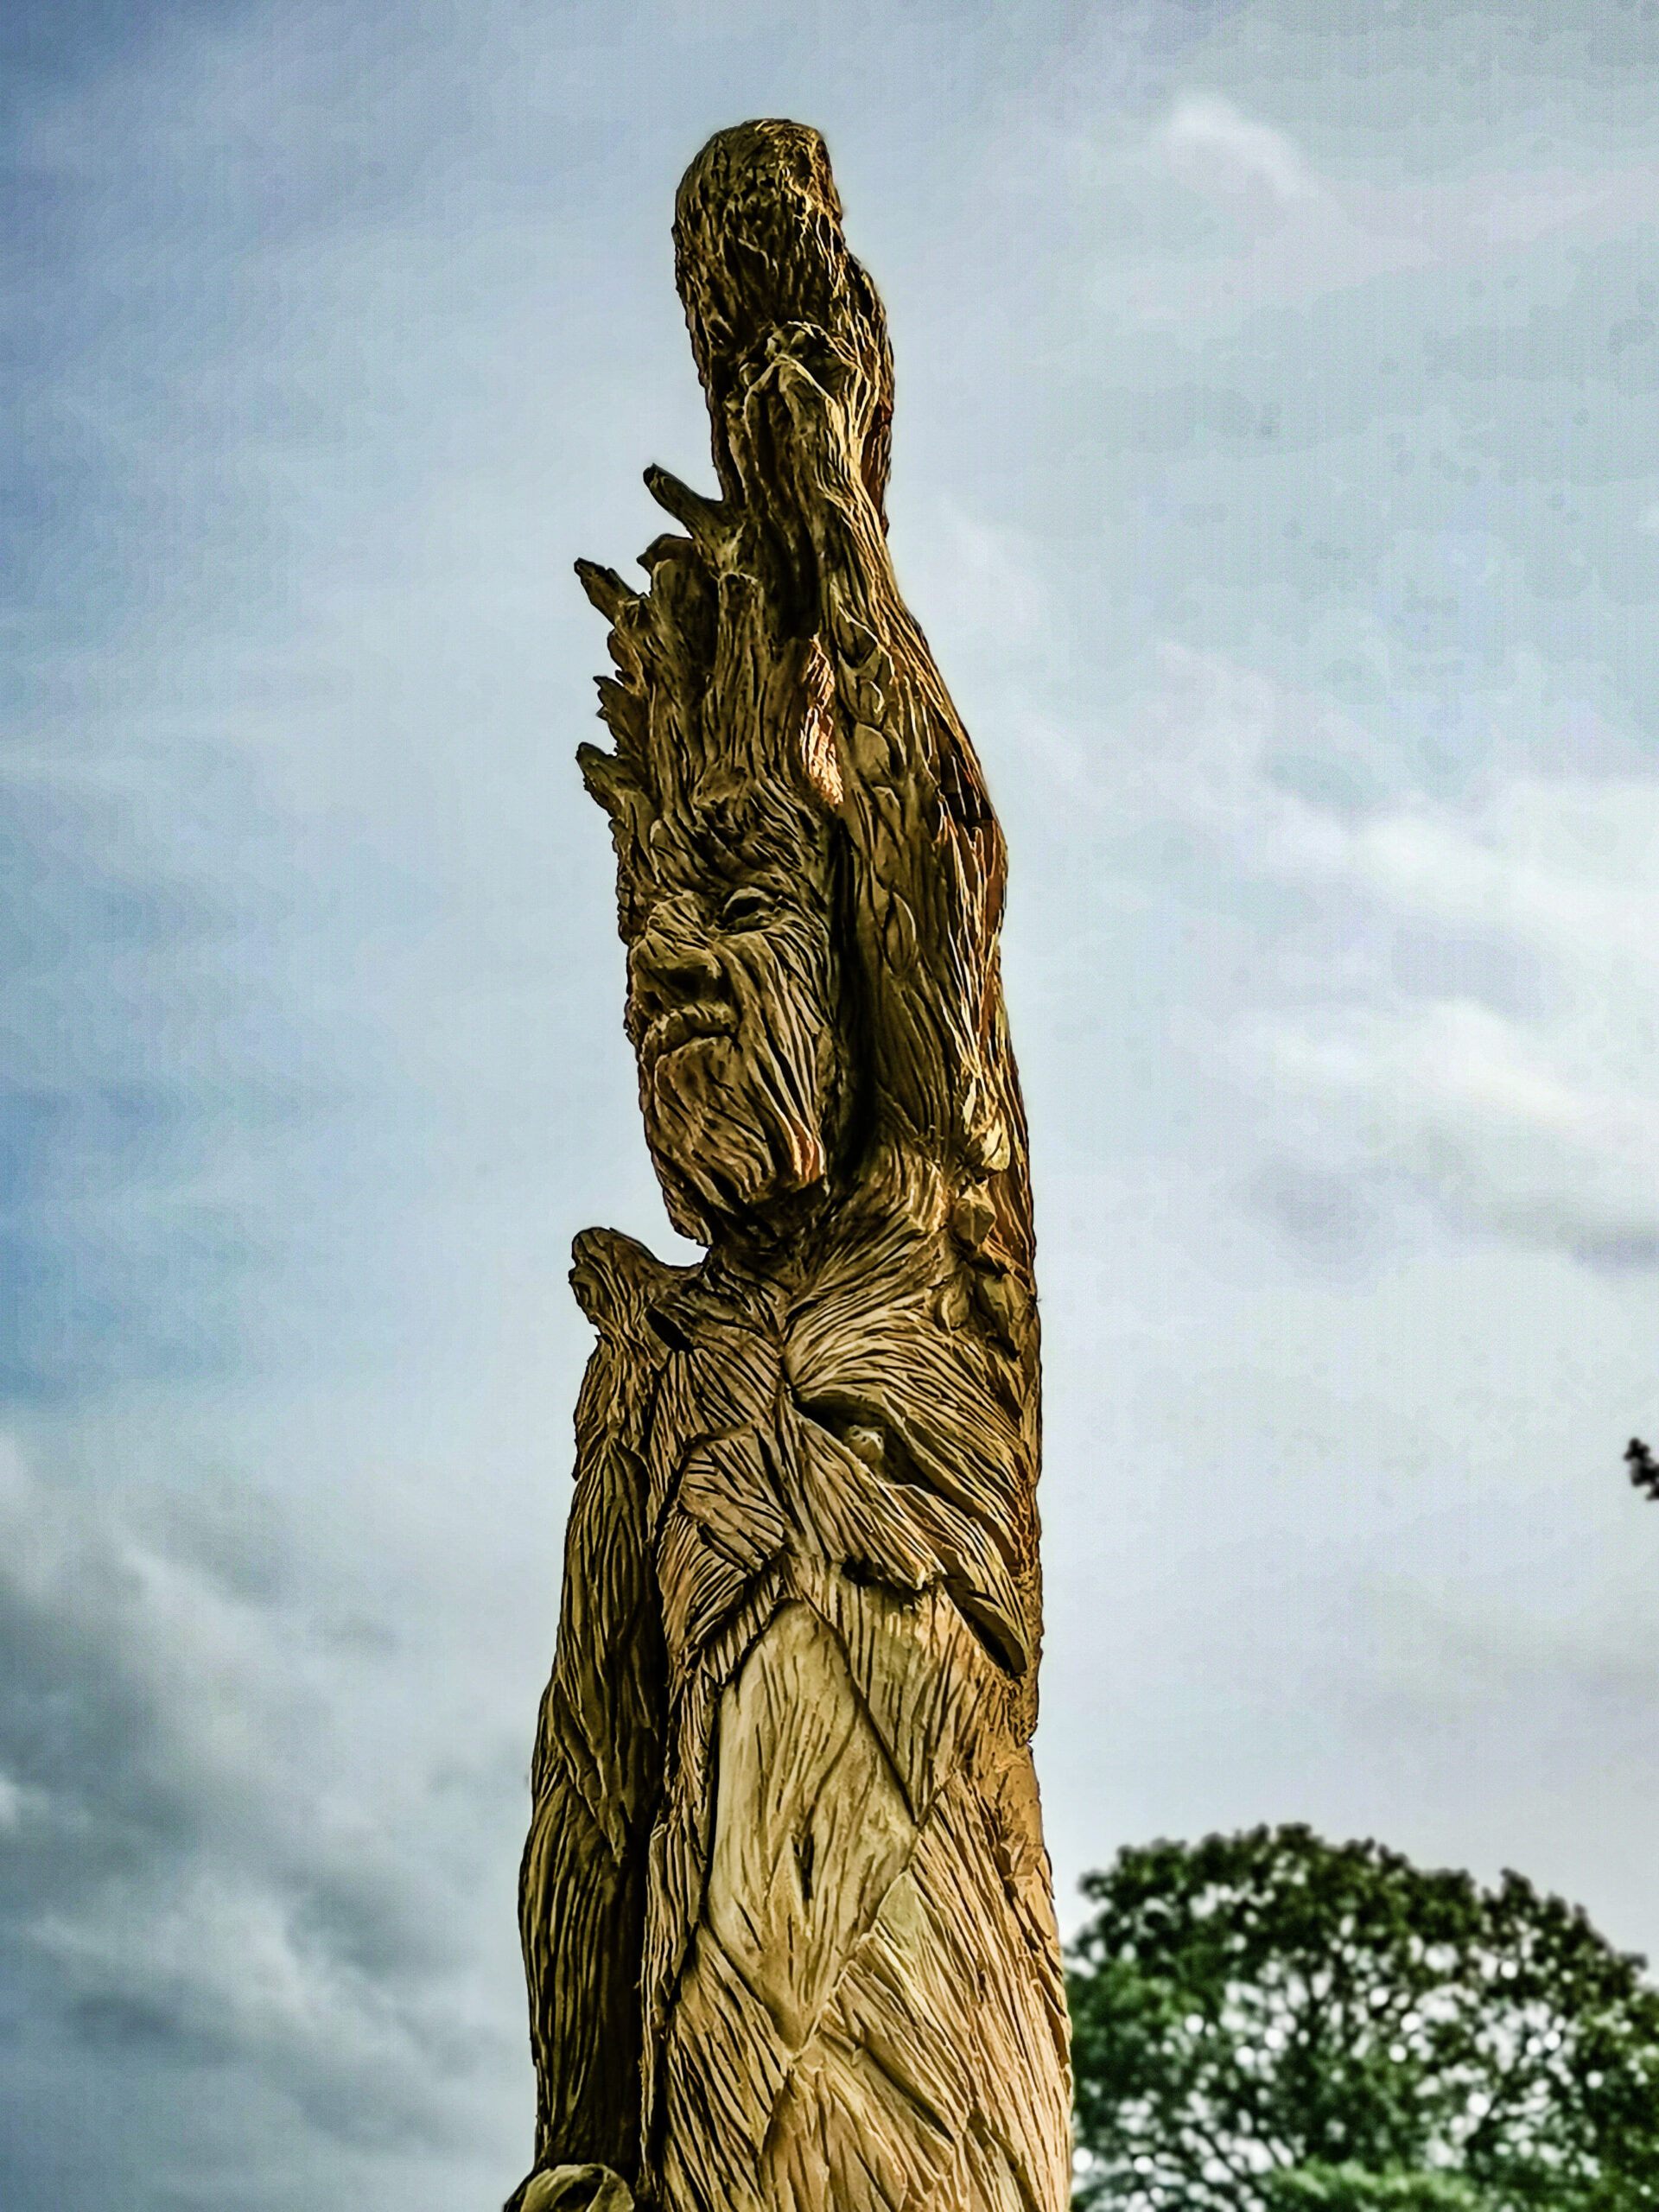 ent sculpture by simon o'rourke at poulton hall